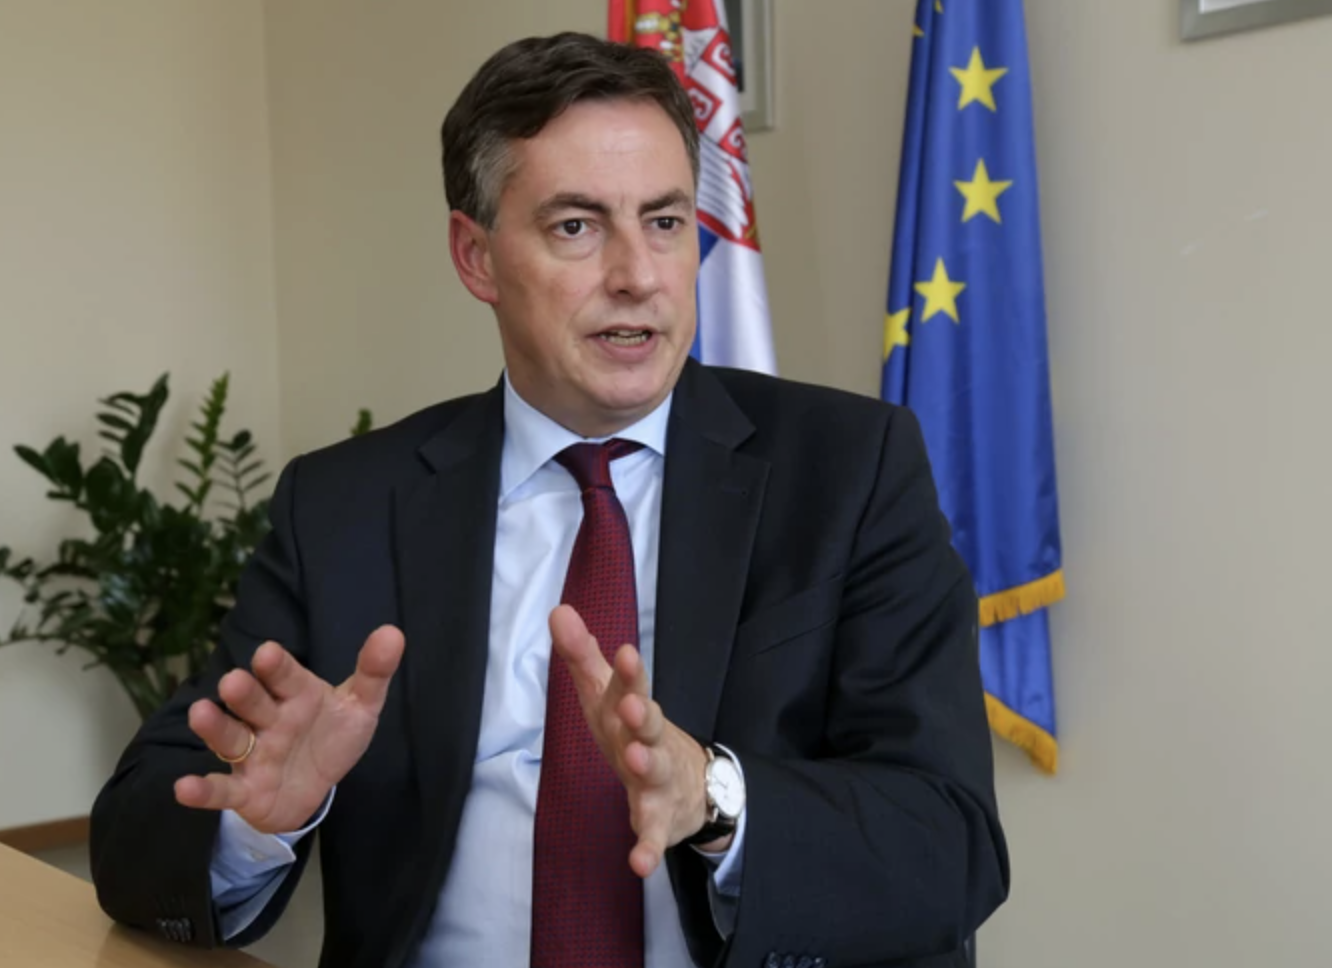 McAllister: Freedom of movement should include the Western Balkans